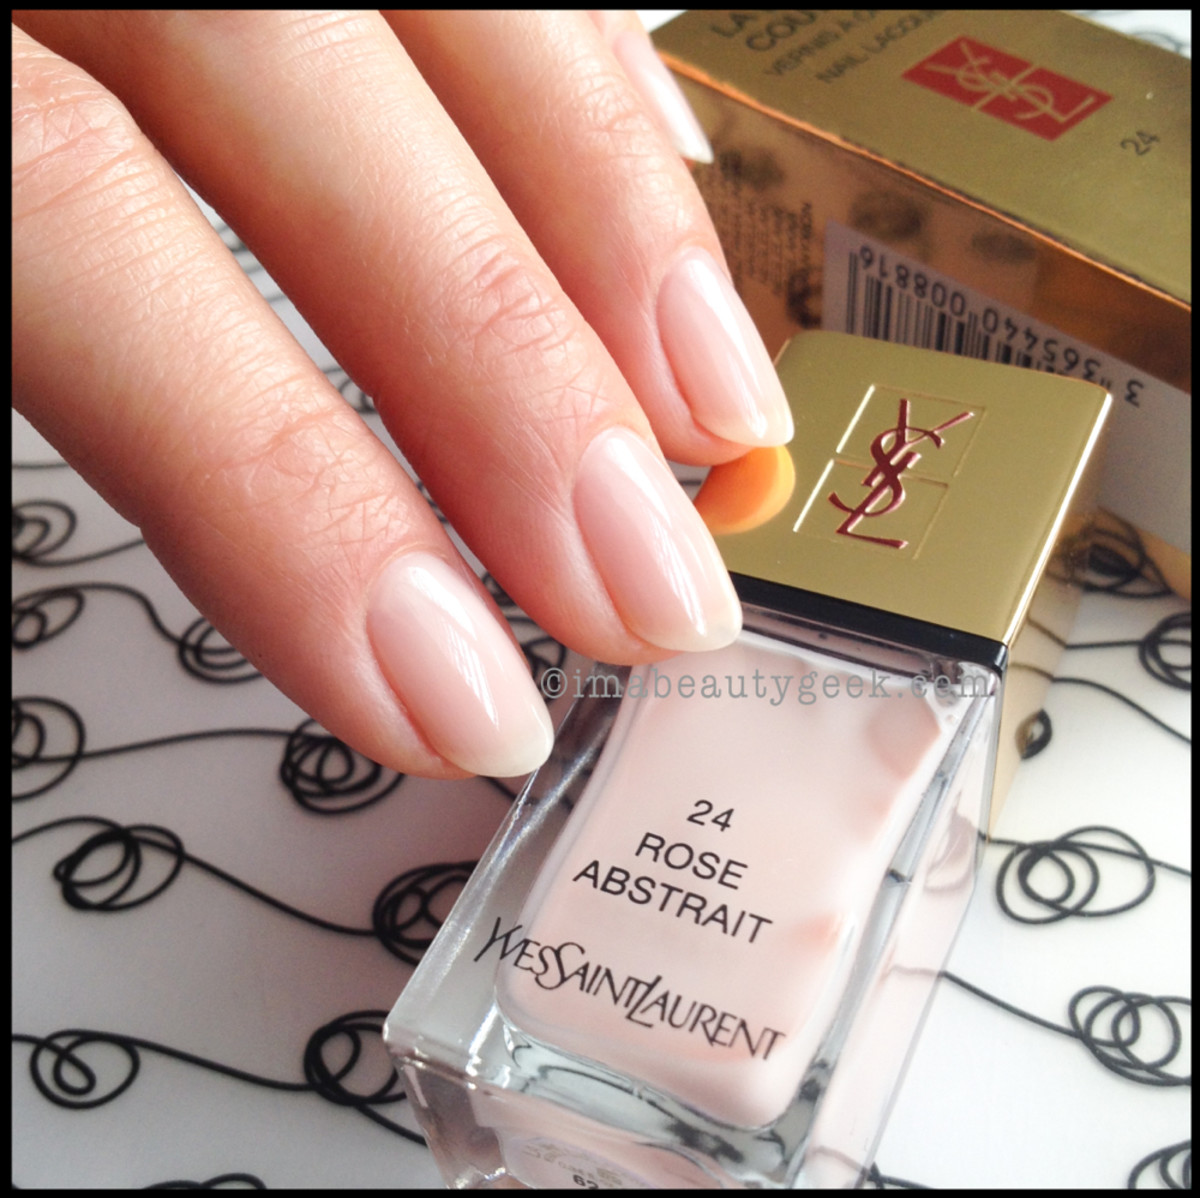 YSL Rose Abstrait 24 YSL La Laque 24_YSL Polish